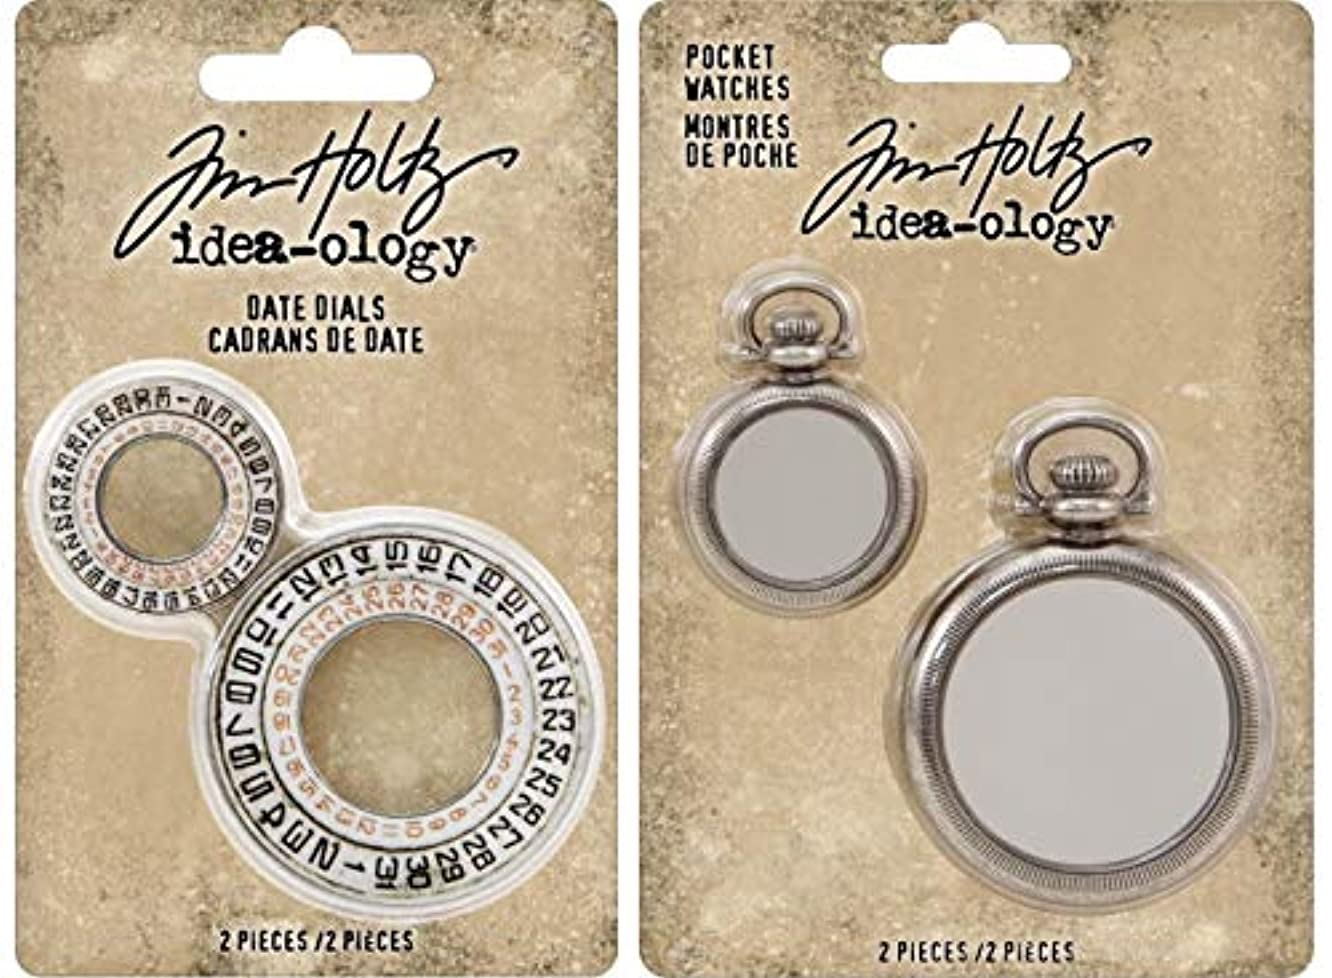 Tim Holtz Advantus - Date Dials and Pocket Watches - 2 Idea-Ology Items